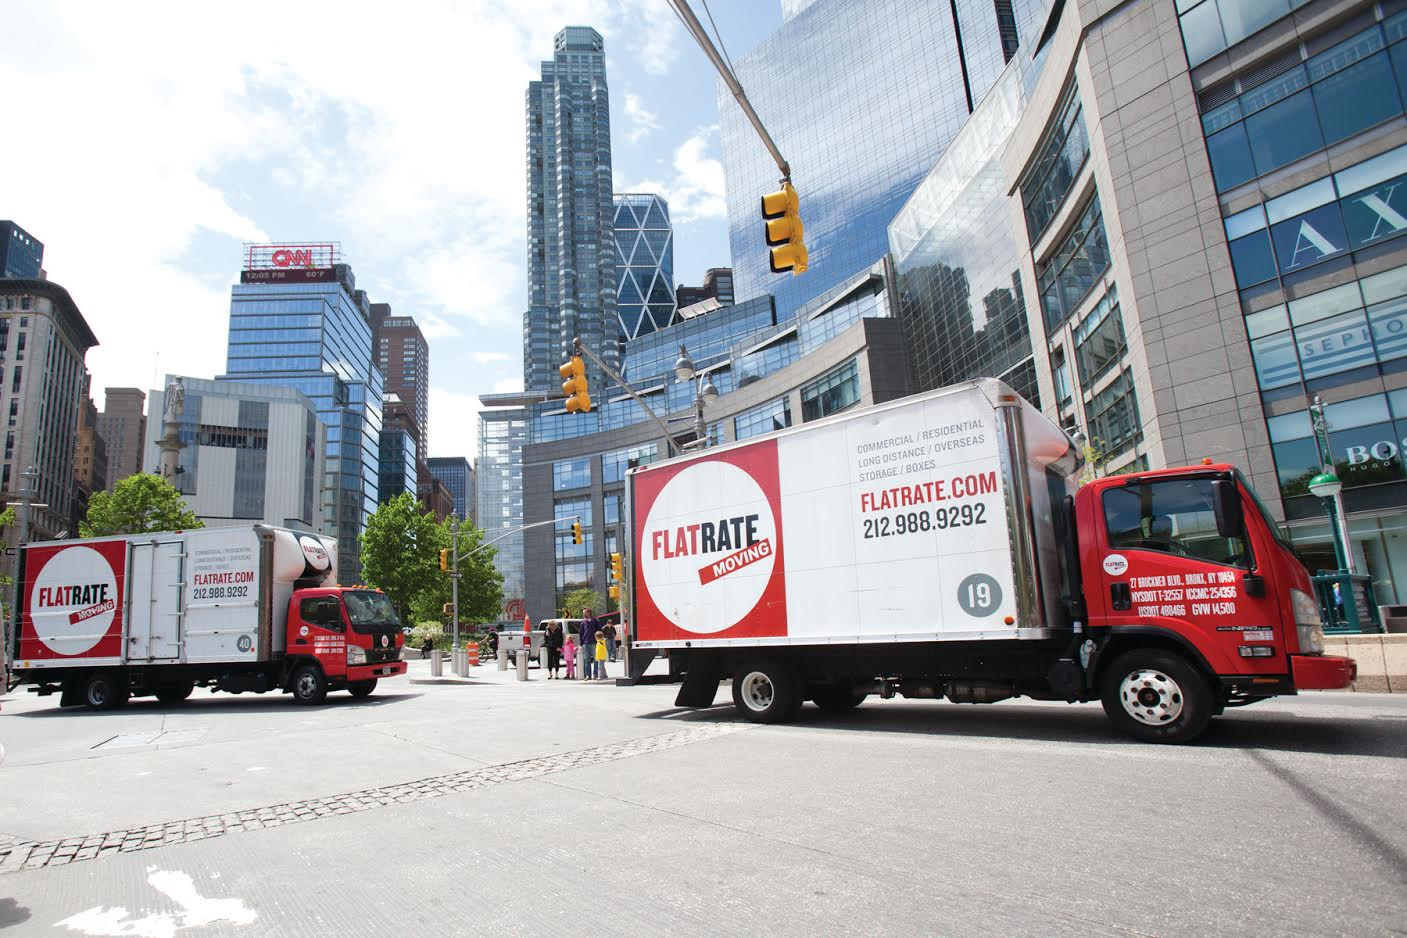 How to move from a house to a tiny NYC apartment: rent a moving truck.